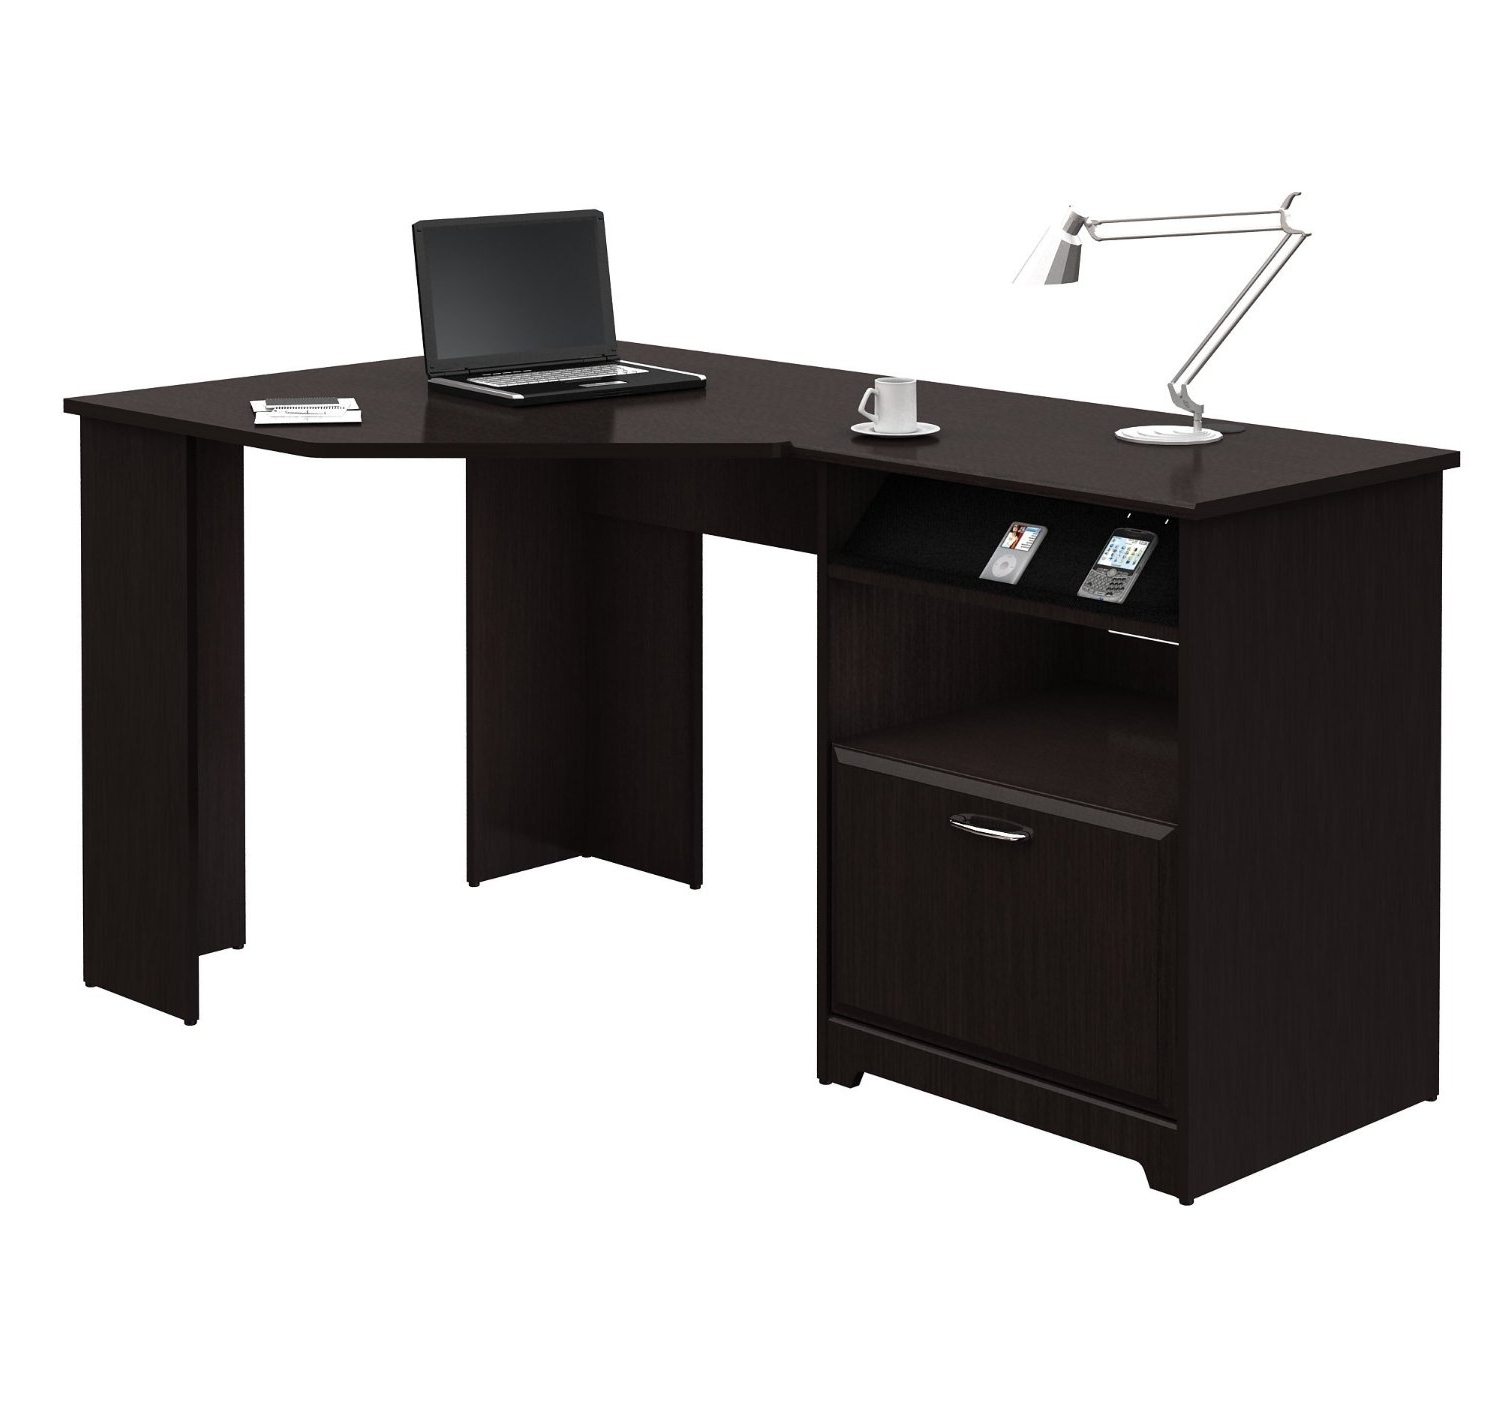 Most Popular Small Corner Wood Home Office Desk Painted With Black Color With Intended For Black Computer Desks (View 13 of 20)